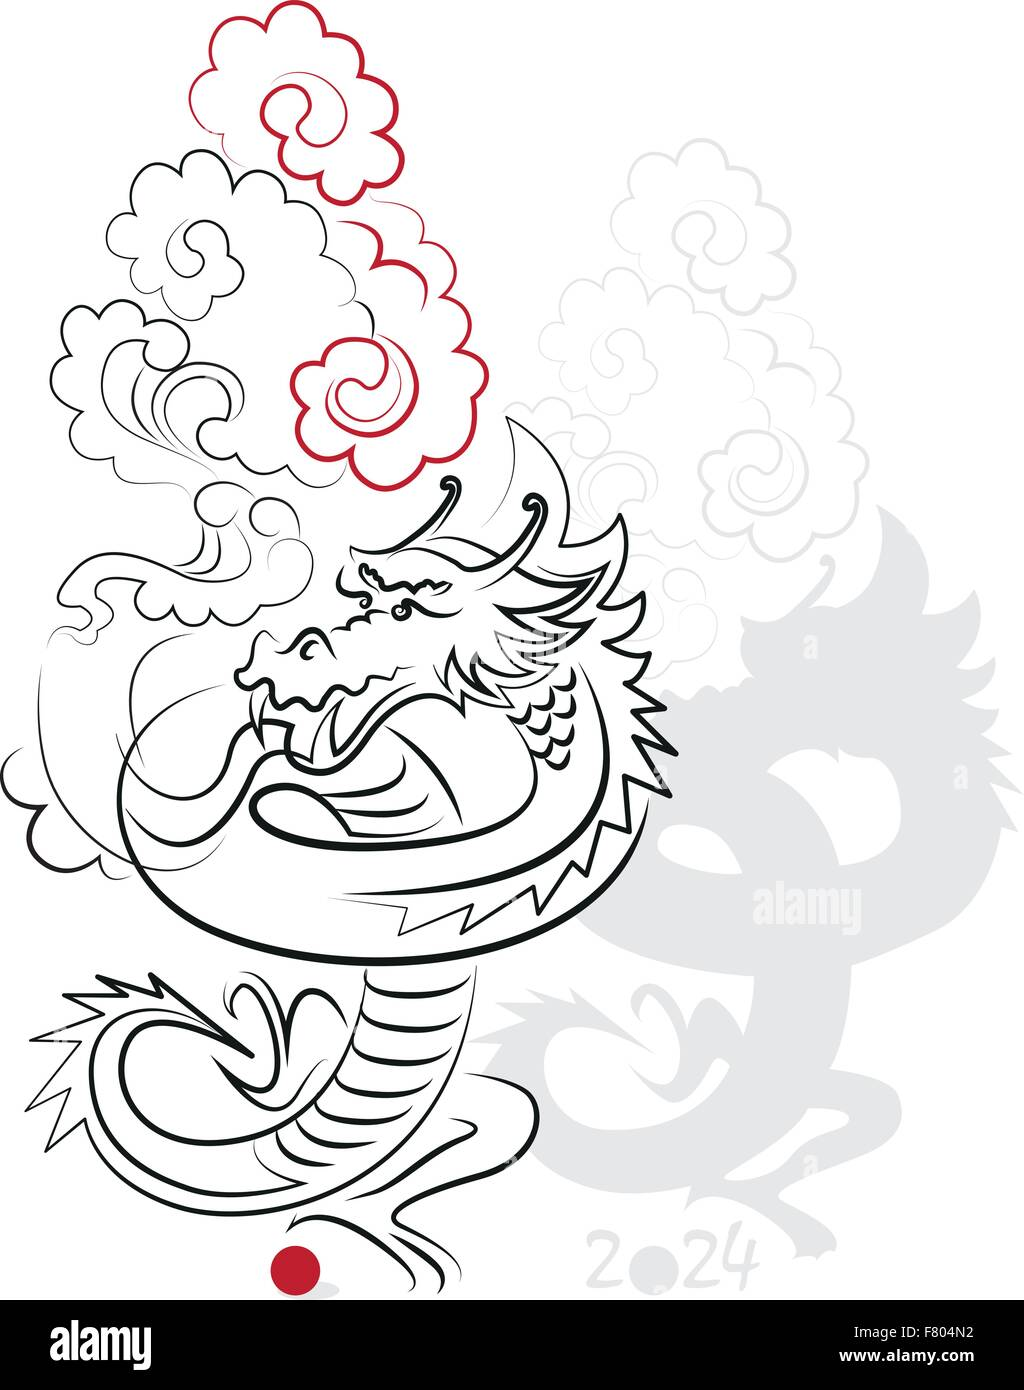 chinese new year 2024 dragon year greeting or invitation card for the holiday vector illustration